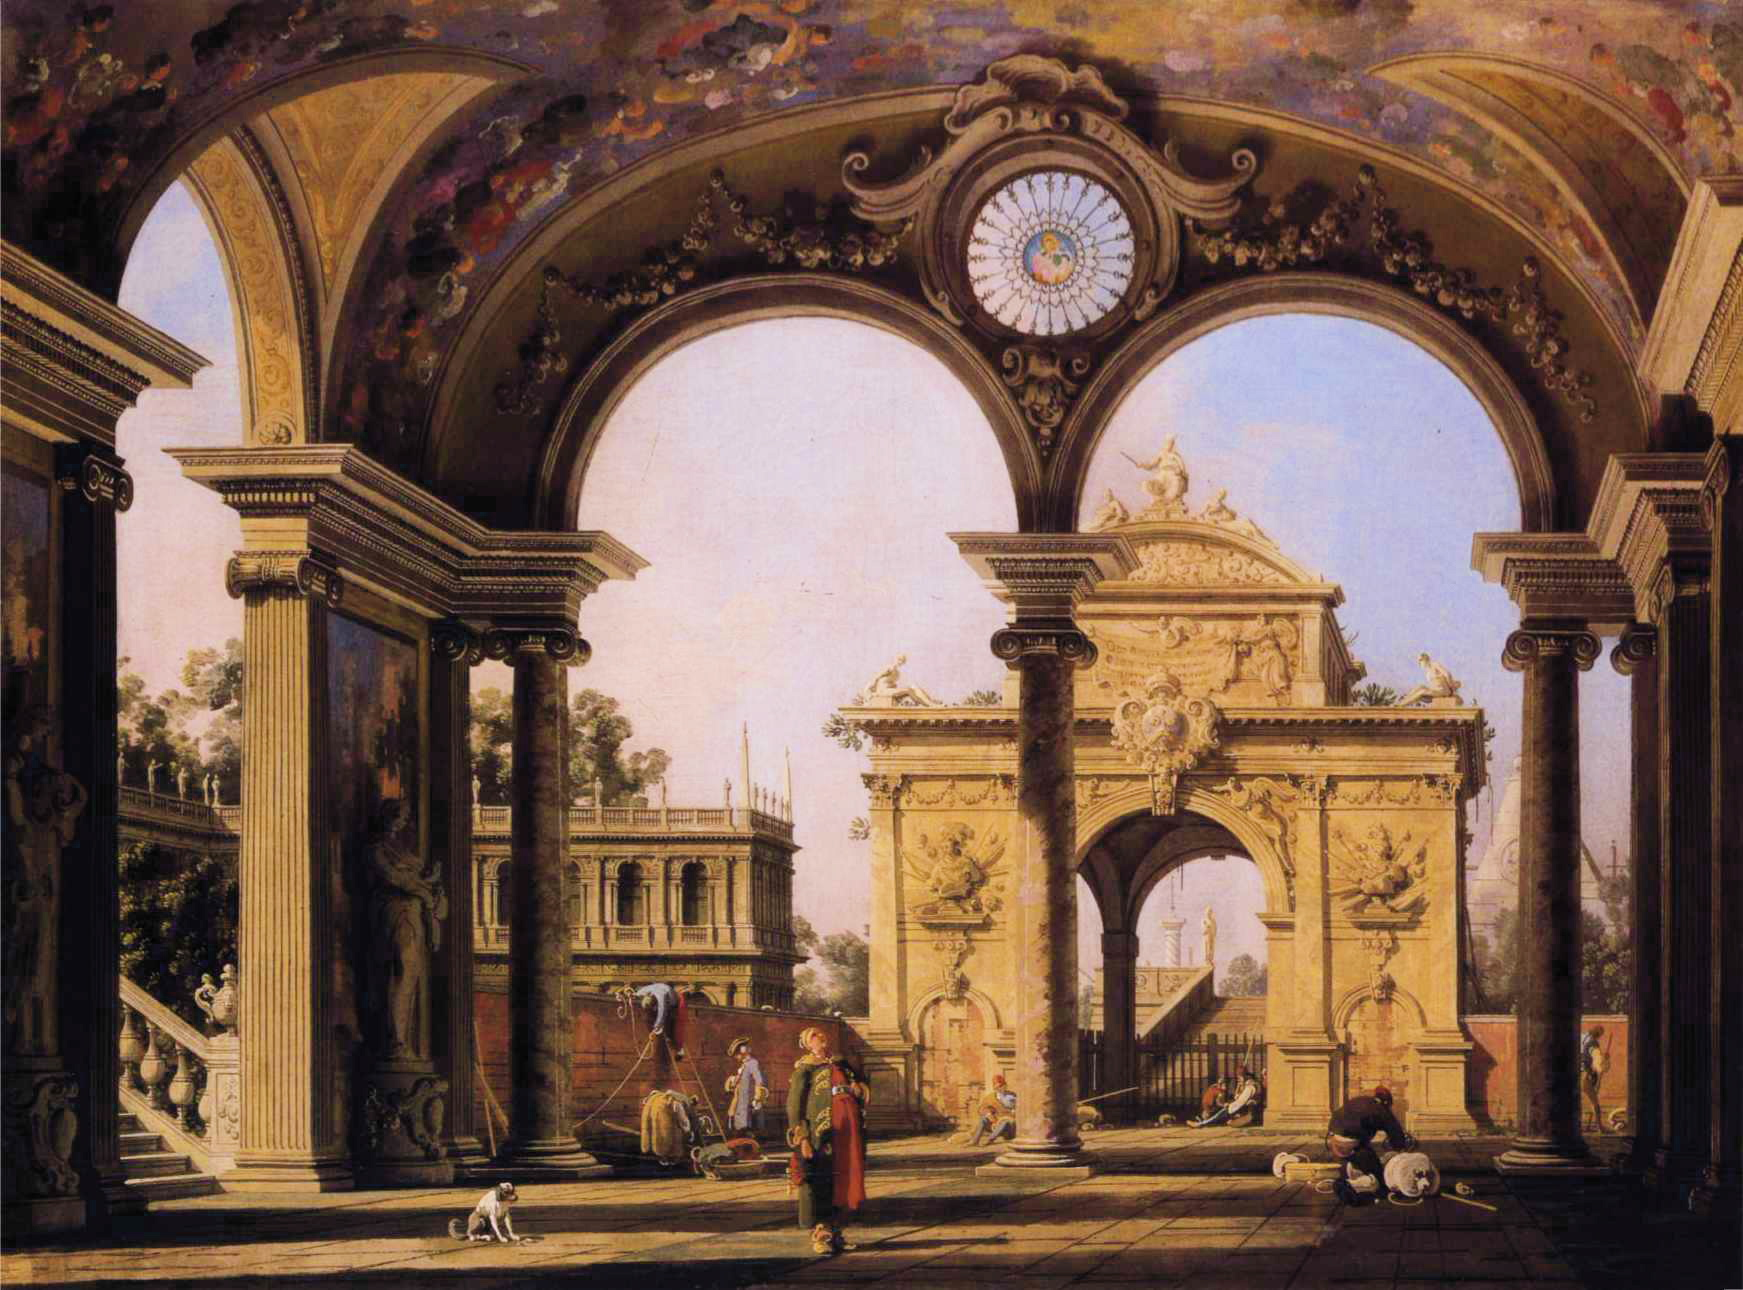 http://upload.wikimedia.org/wikipedia/commons/9/99/Canaletto_-_Capriccio_of_a_Renaisance_Triumphal_Arch_seen_from_the_Portico_of_a_Palace.JPG